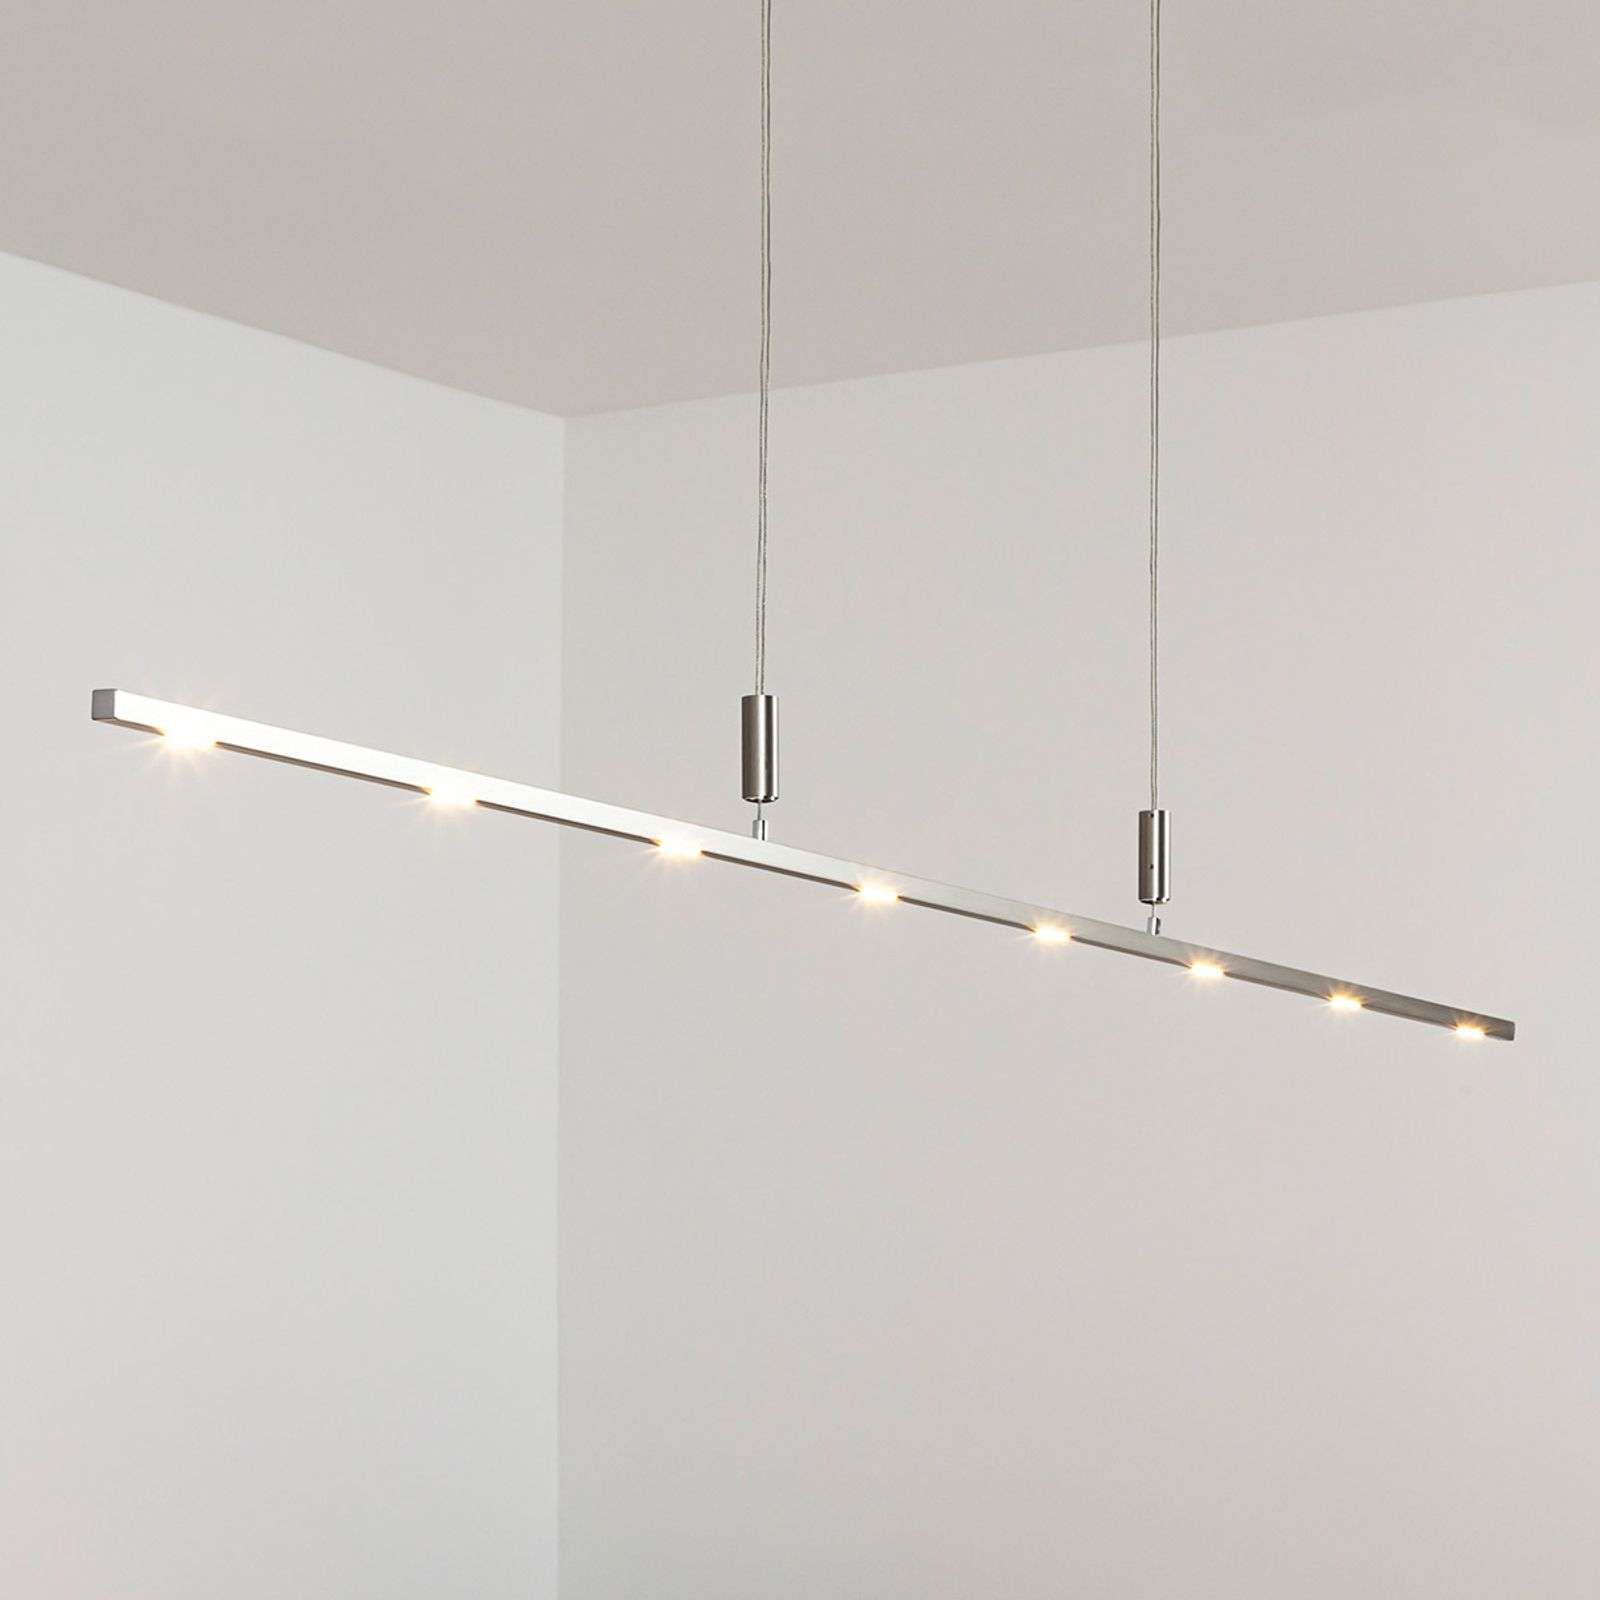 Suspension LED Tolu fine à int variable 180 cm